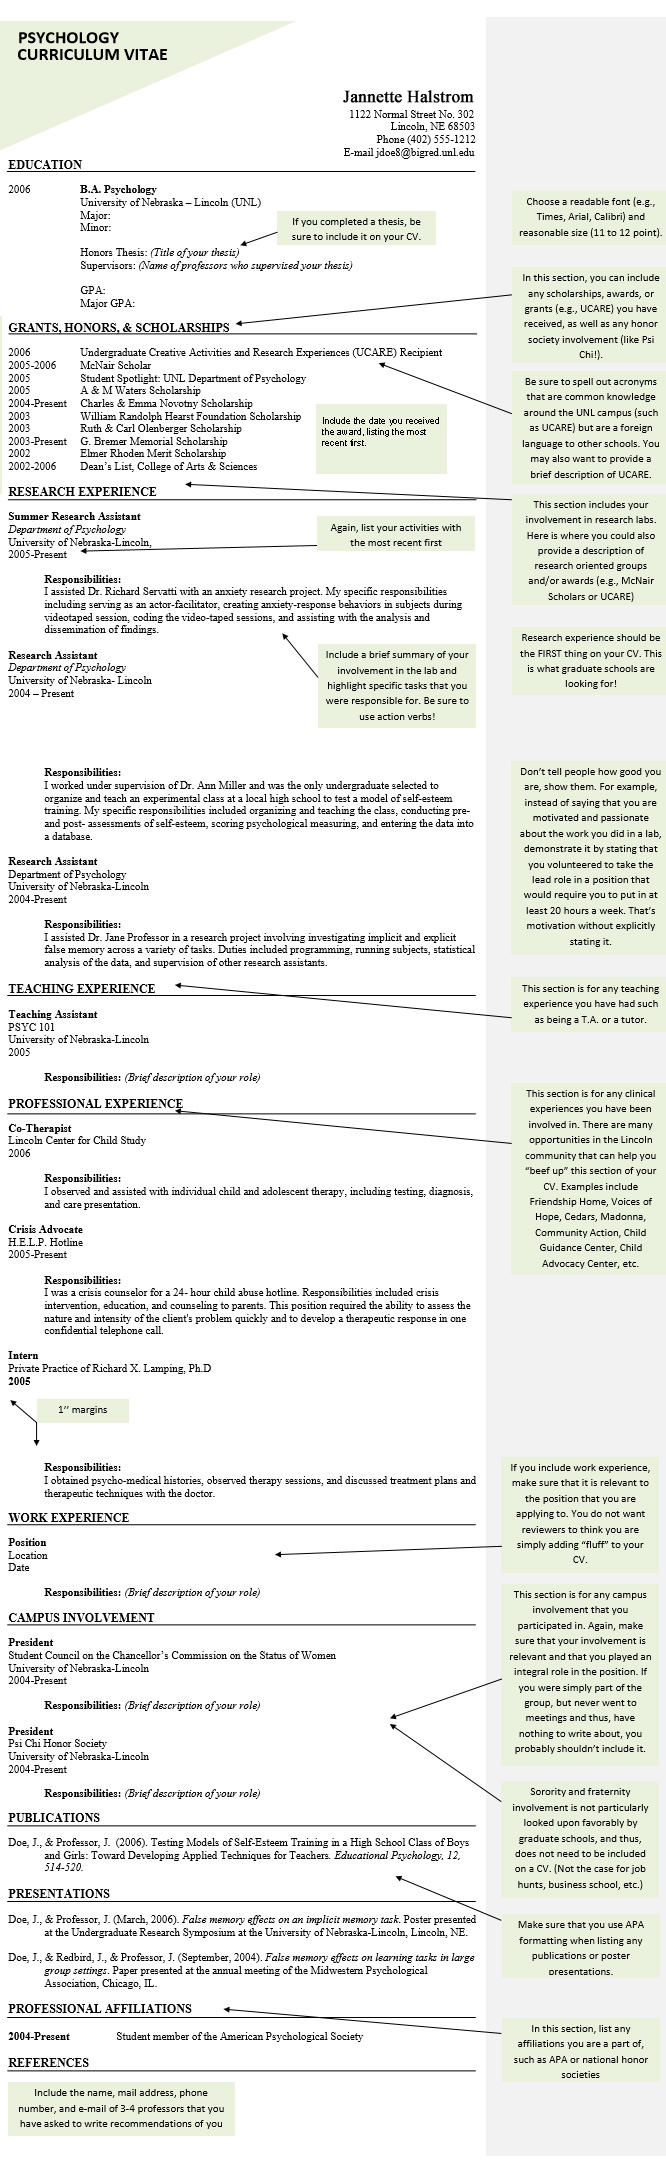 psychology cv and resume samples templates and tips psychology resume samples